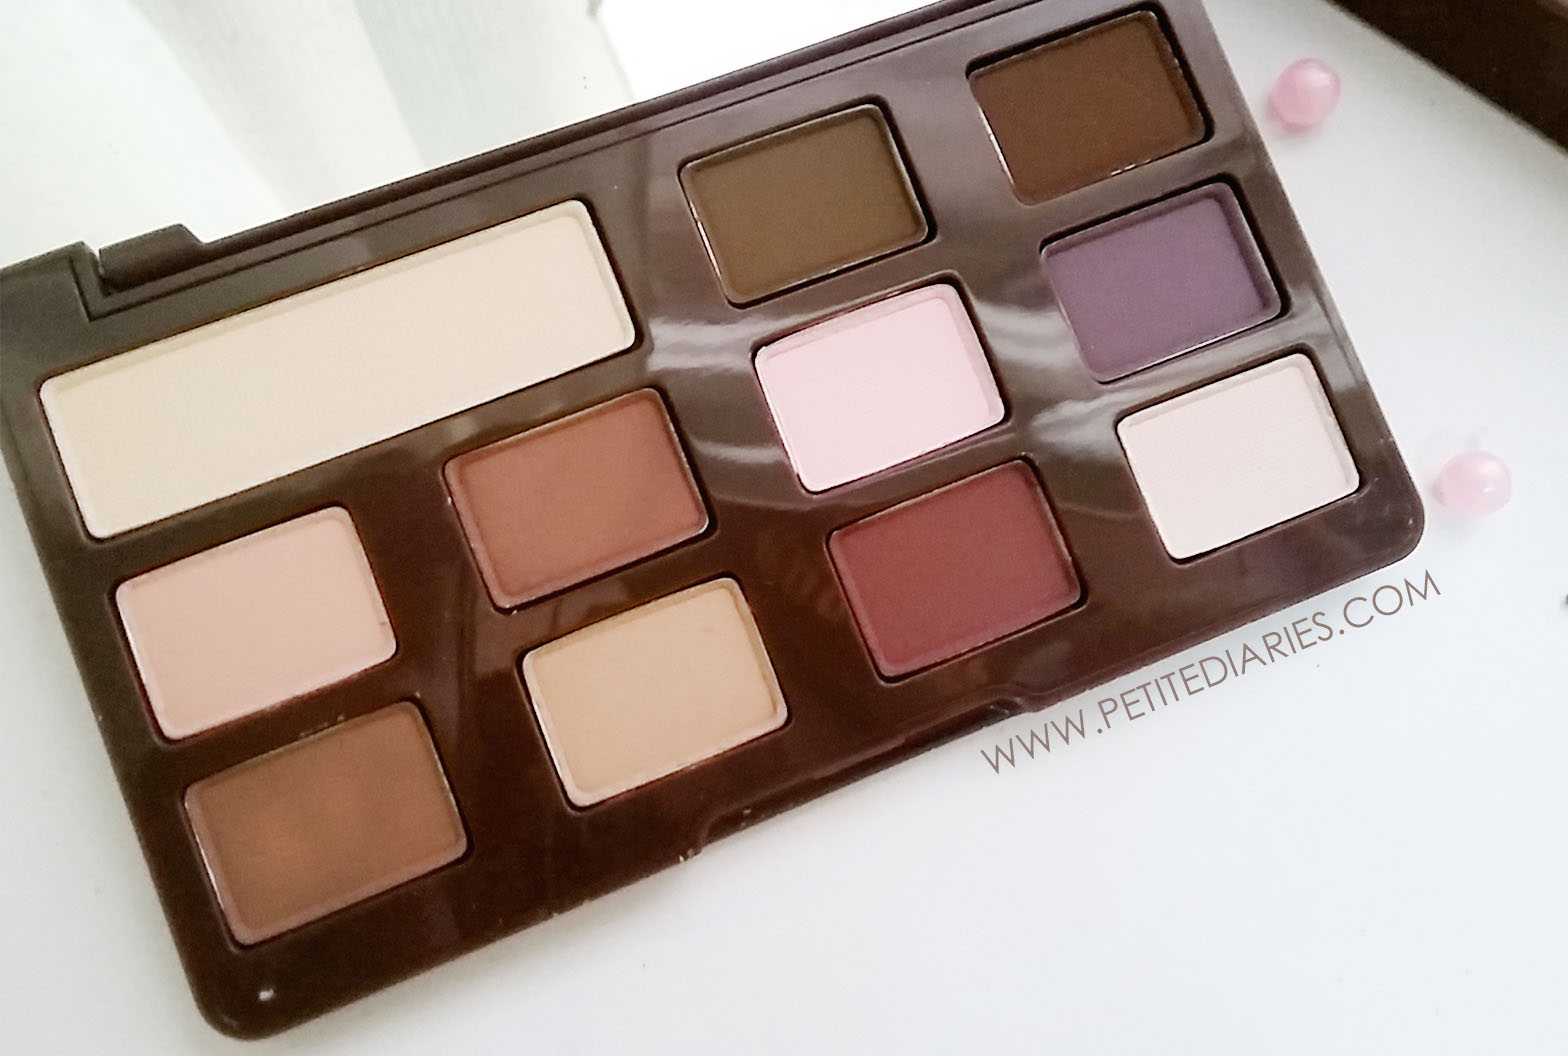 new too faced eye shadow review mini chocolate bar matte